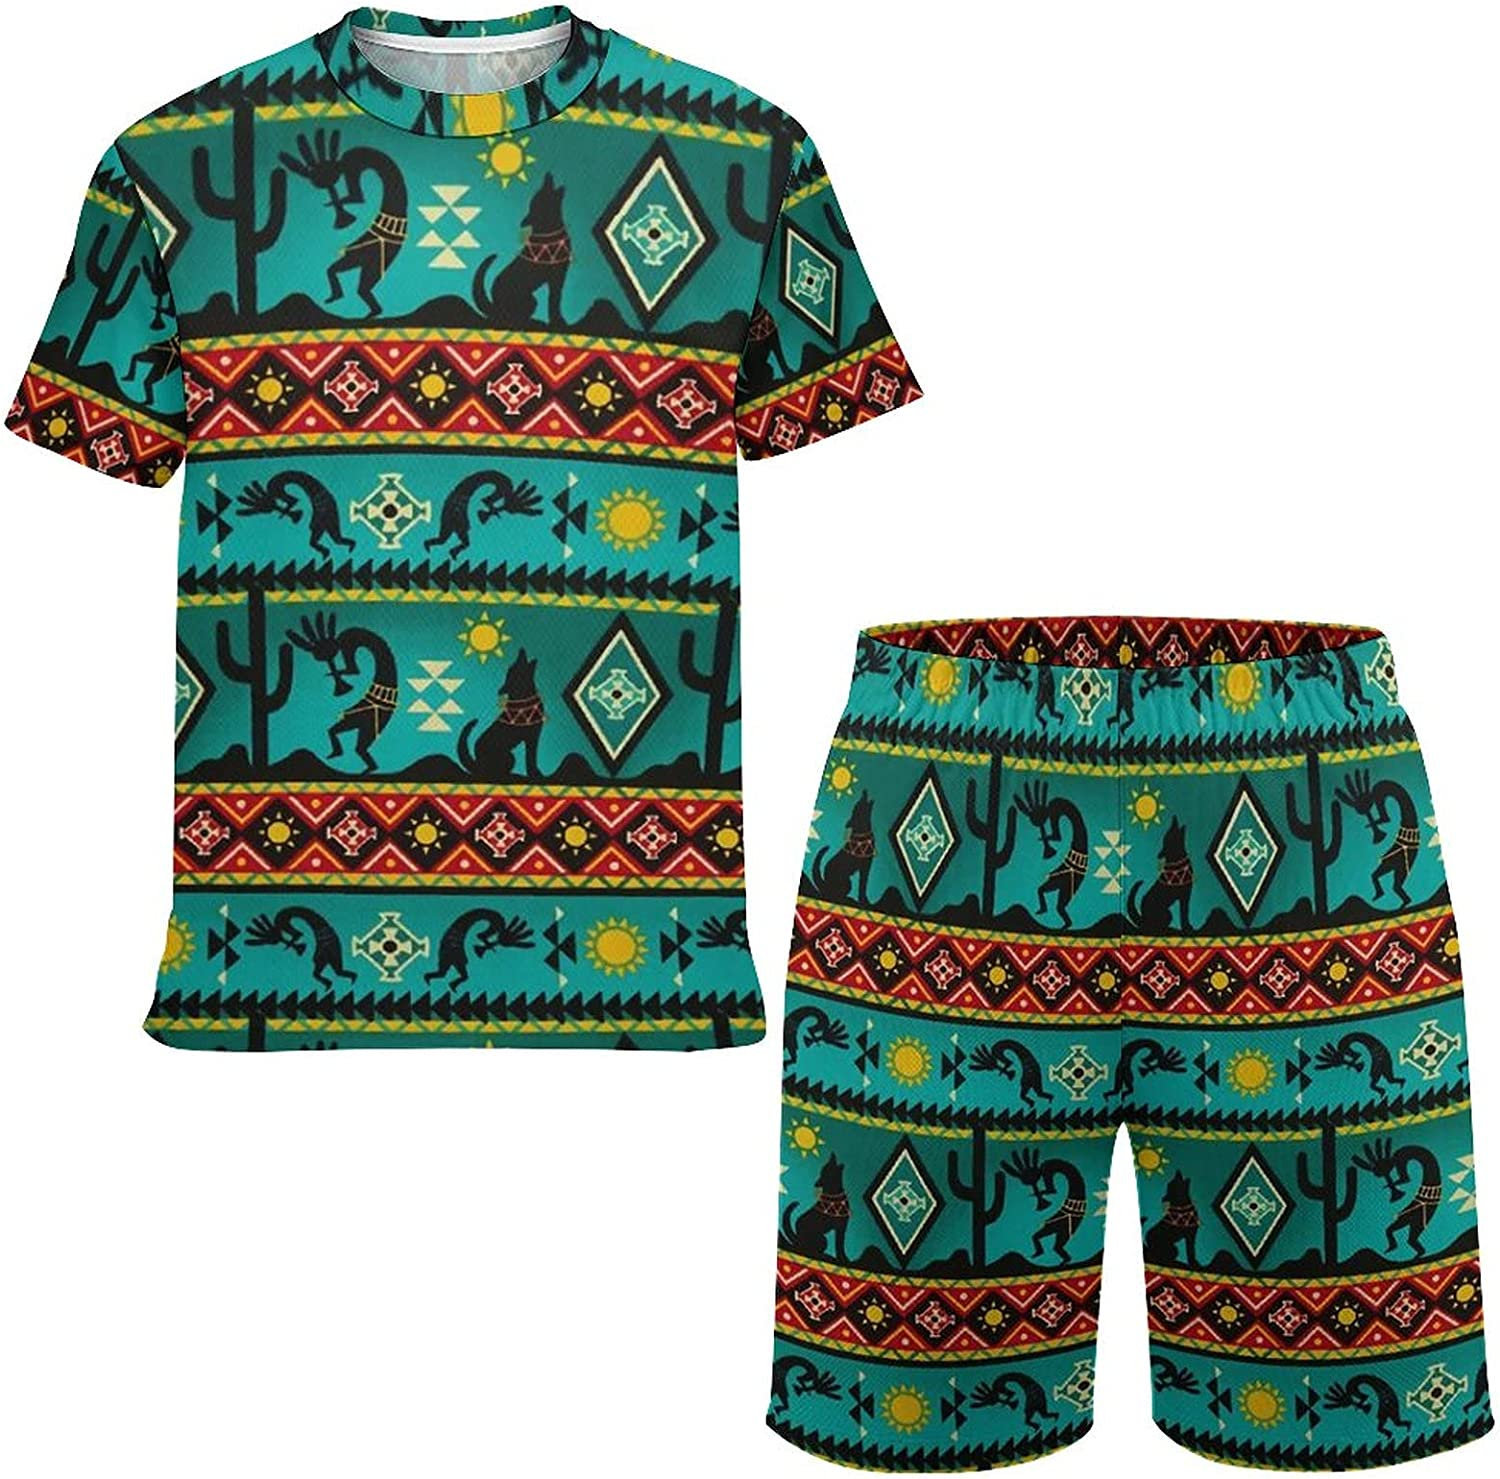 NiYoung Boys/Girls Southwestern Kokopelli Native American T-Shirt Shorts Suits Tracksuit Outfits Playwear Hoodies Game Clothing